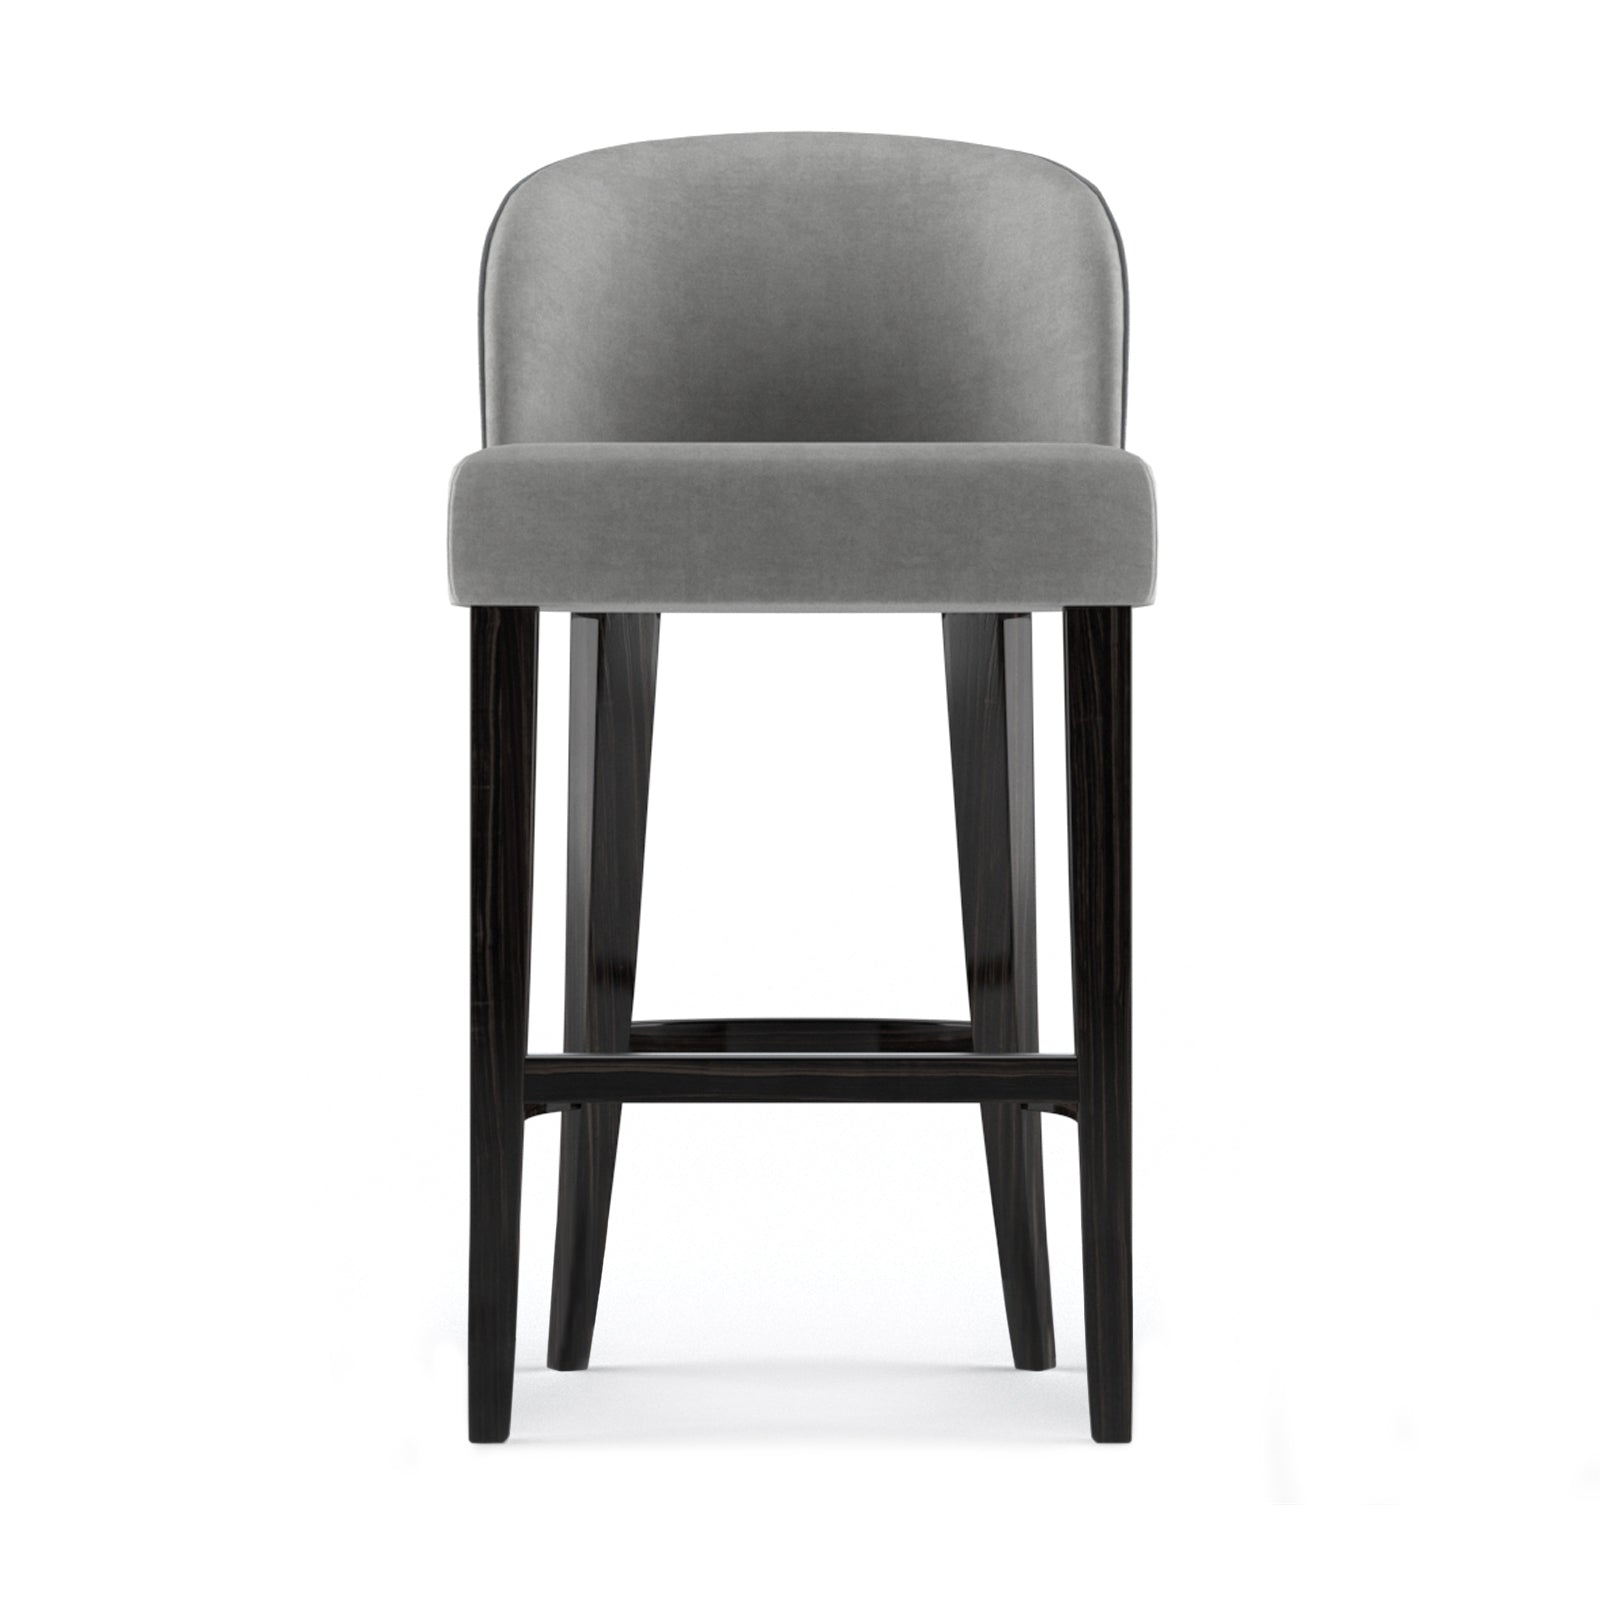 BOSELY BAR & COUNTER STOOL